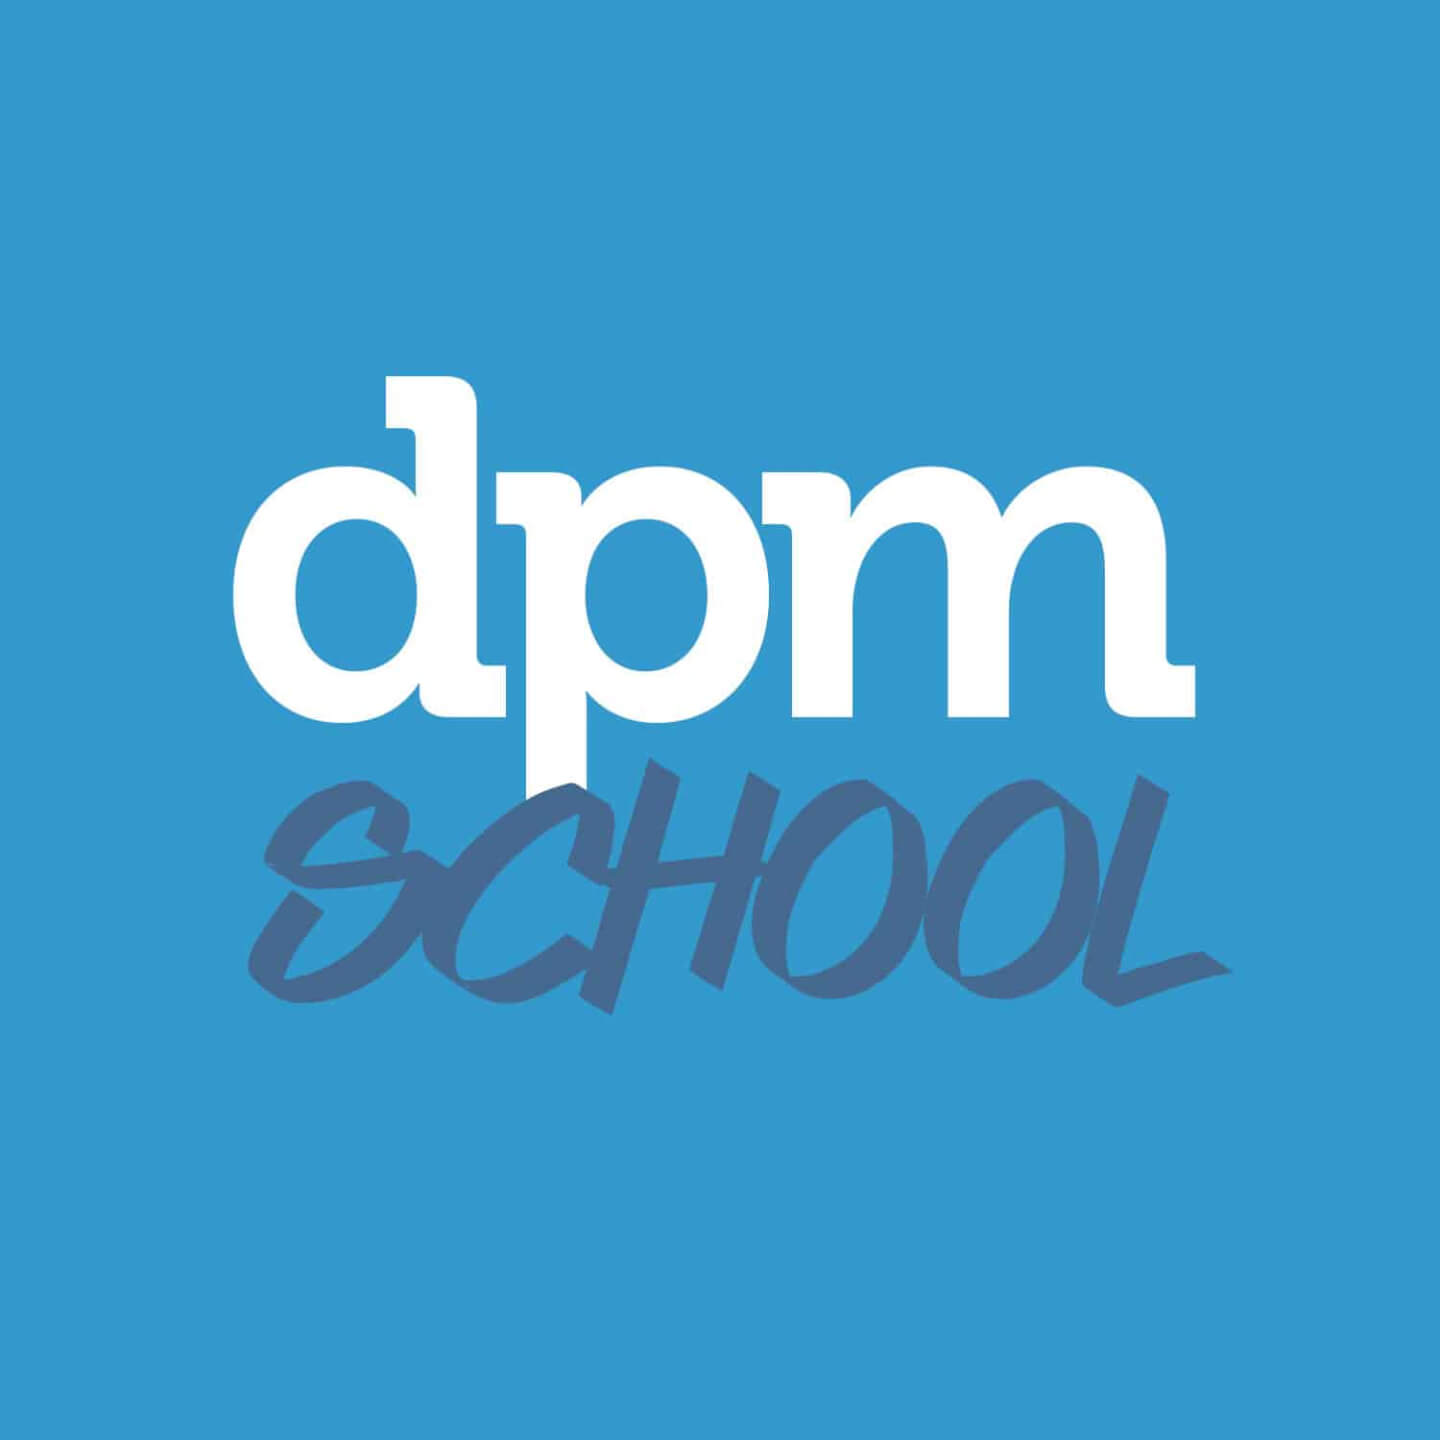 project management training - the digital project manager school online digital project management training course